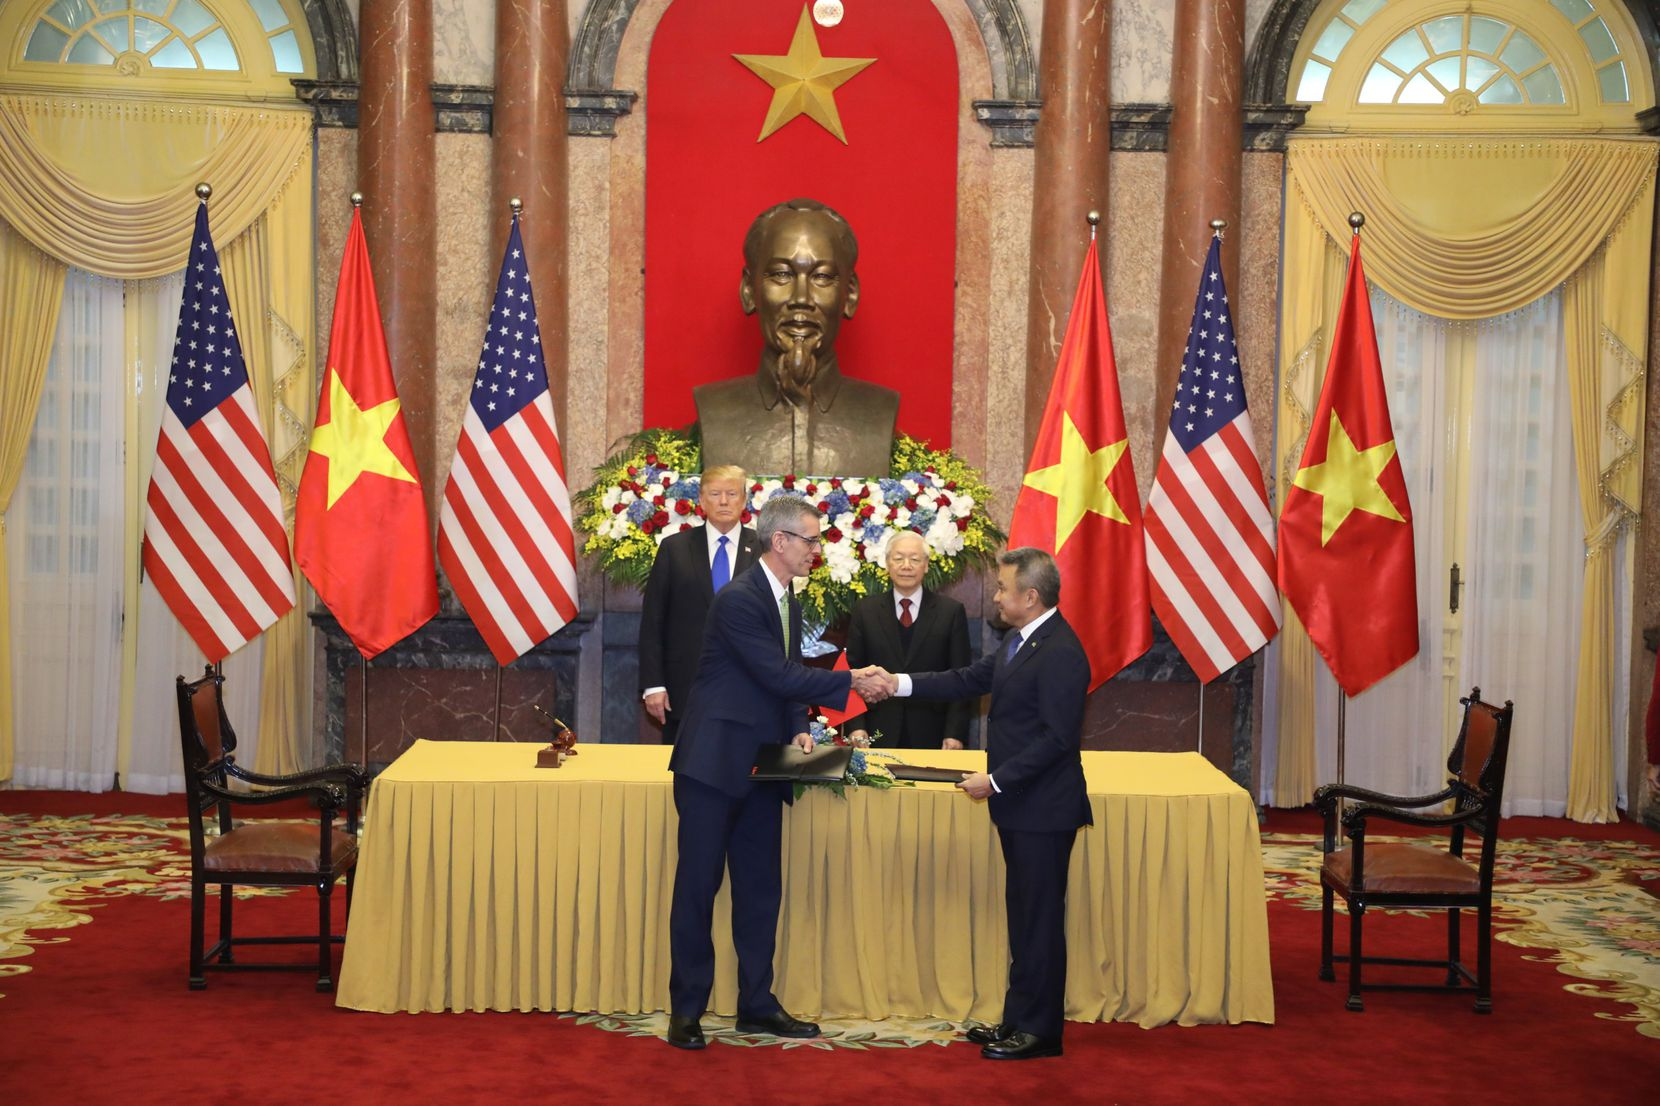 Sabre executive Dave Shirk shakes hands with Vietnam Airlines CEO Duong Tri Thanh during Wednesday's ceremonial signing session in Hanoi as part of President Trump's summit with his counterpart in Vietnam.